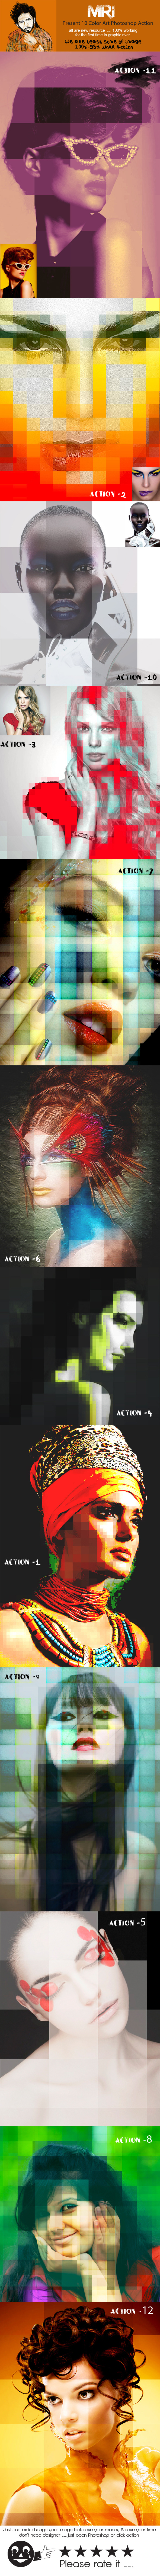 Paixgel art - Actions Photoshop